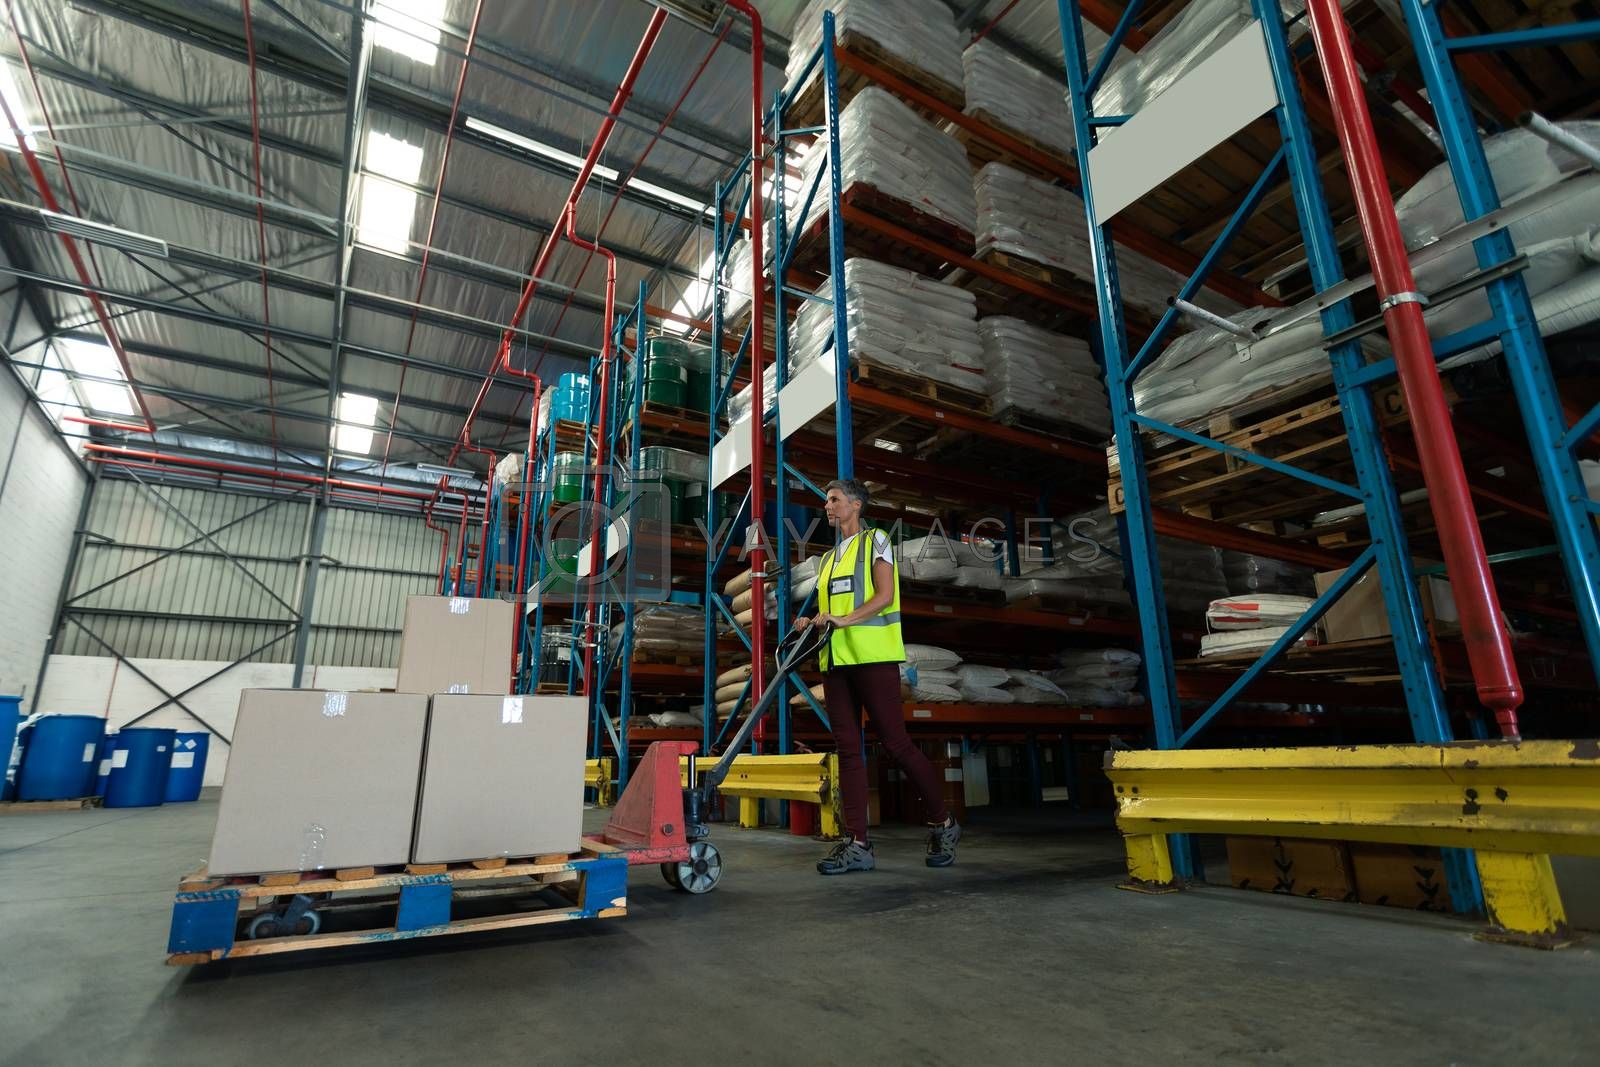 Low angle of Mature Caucasian female staff using pallet jack in warehouse. This is a freight transportation and distribution warehouse. Industrial and industrial workers concept